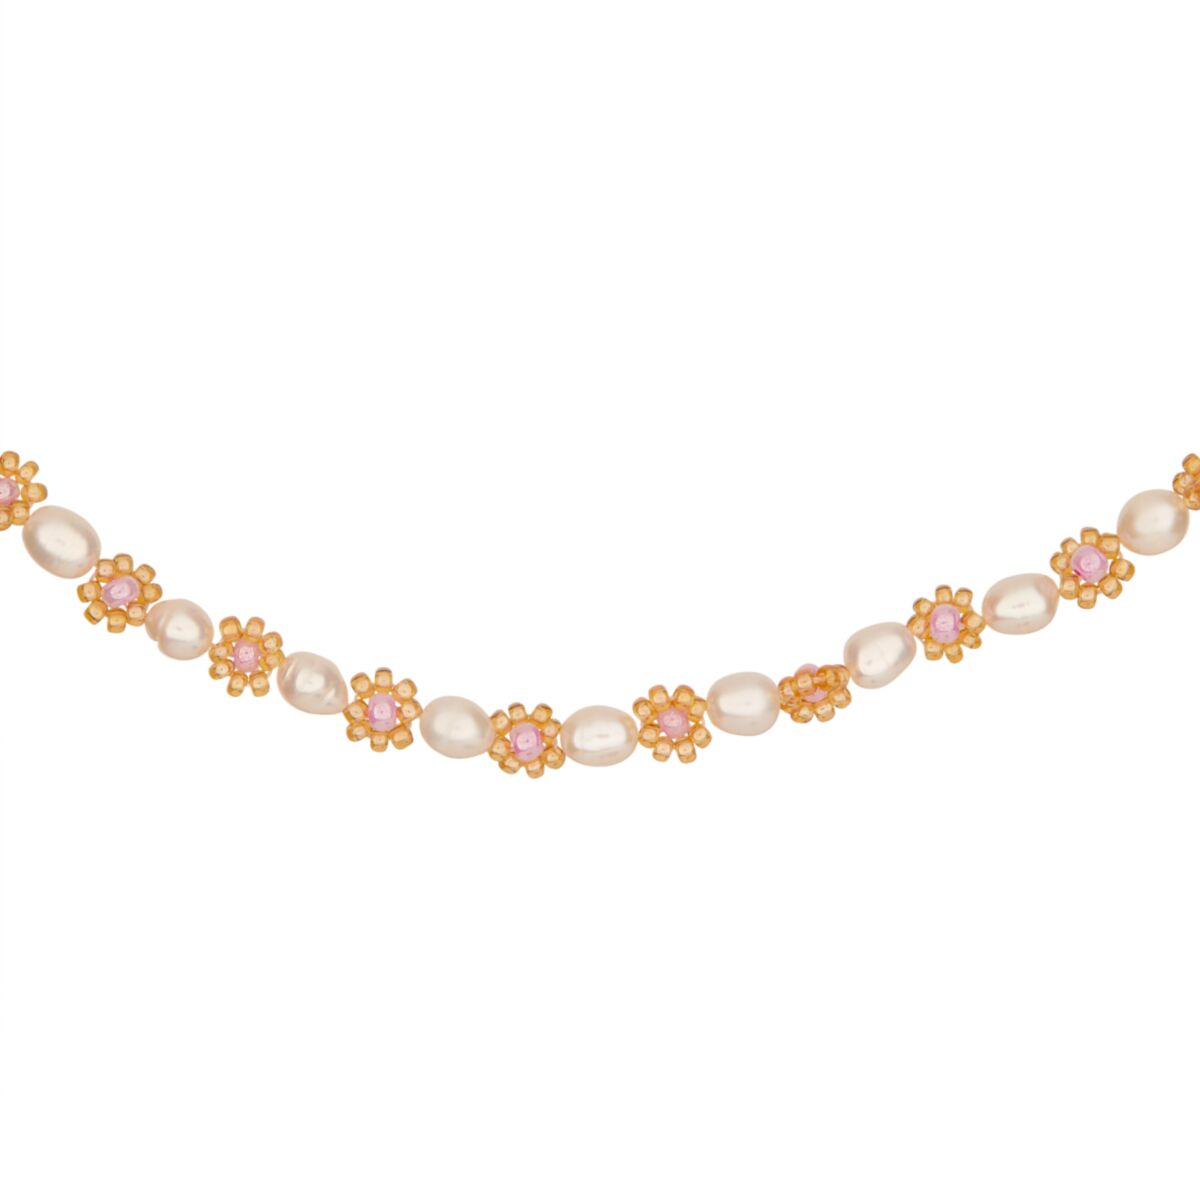 Persephone Pearl Necklace image